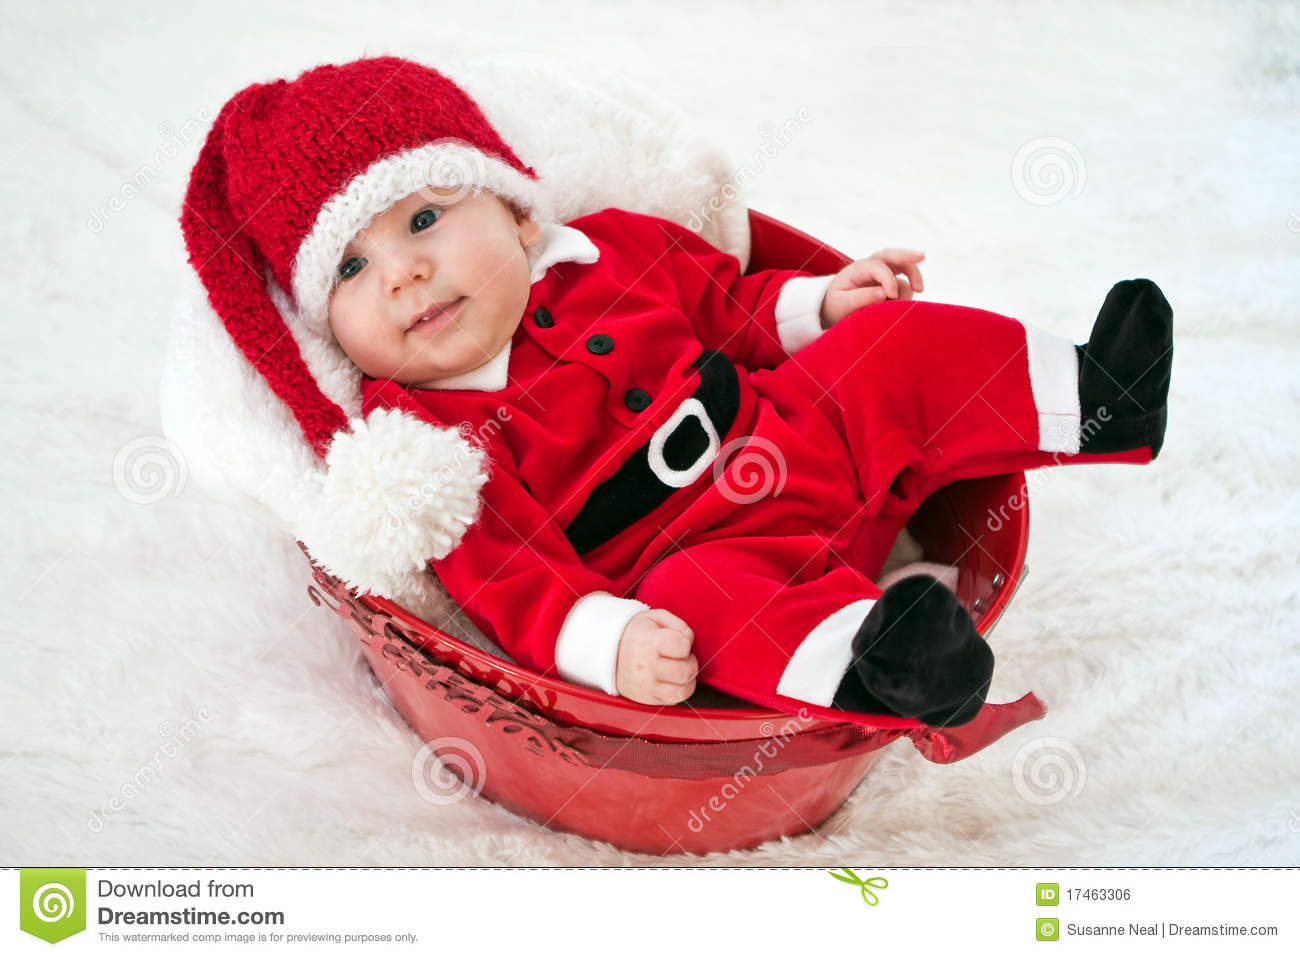 fb8a97b7e A cute four month old baby wears a red Santa suit and knitted cap. He has  bright blue eyes and an adorable big smile. He is lying comfortably in a  red ...